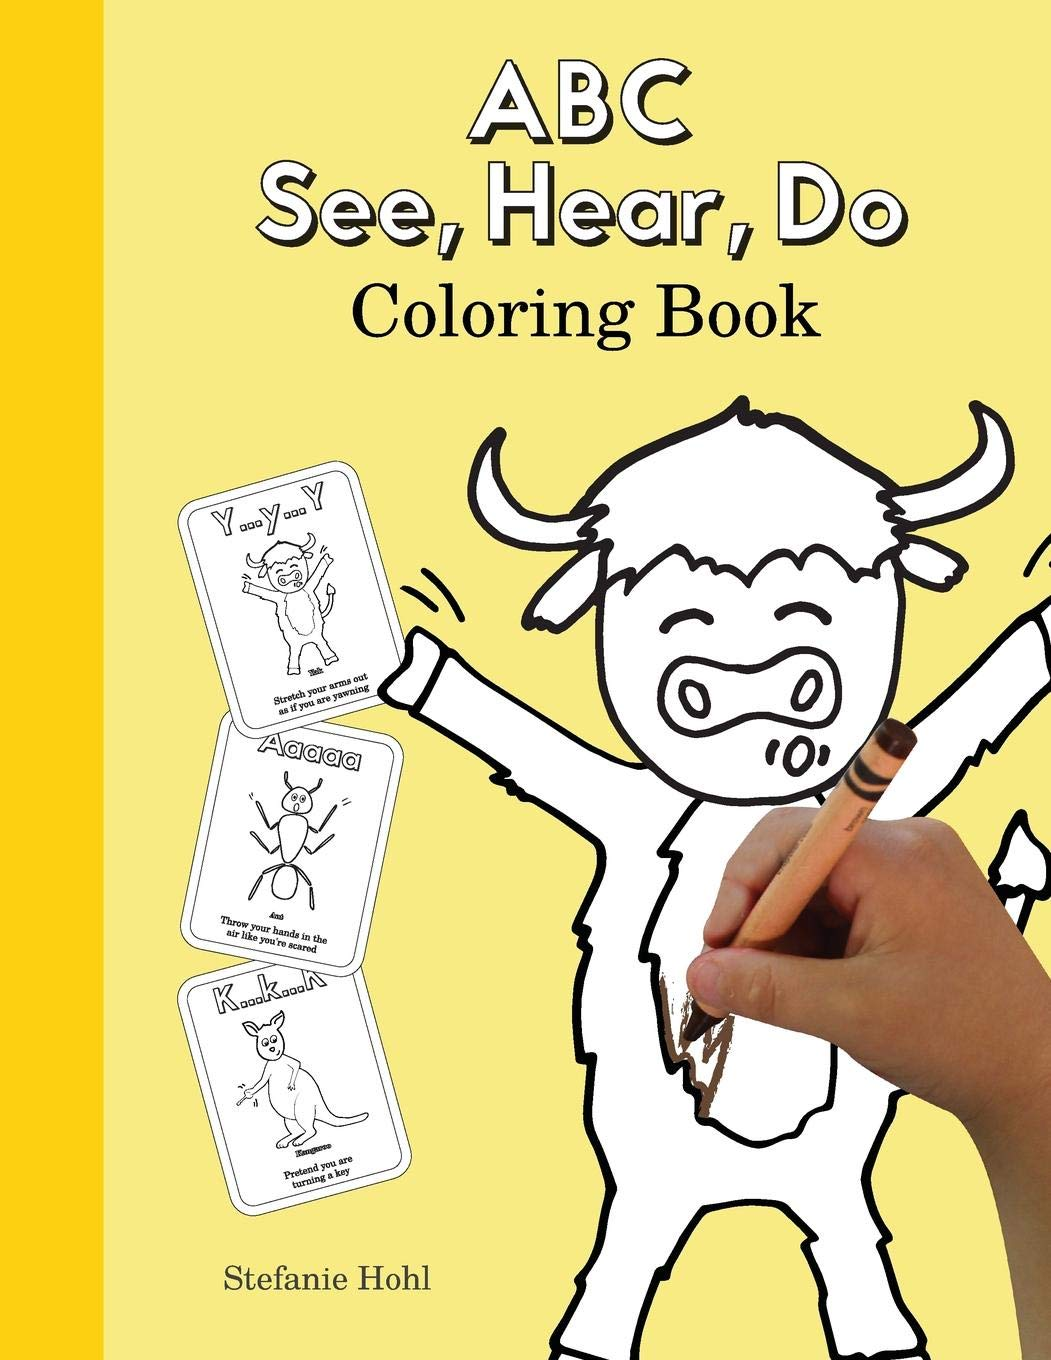 Amazon Com  Abc See, Hear, Do Coloring Book (9780998577647